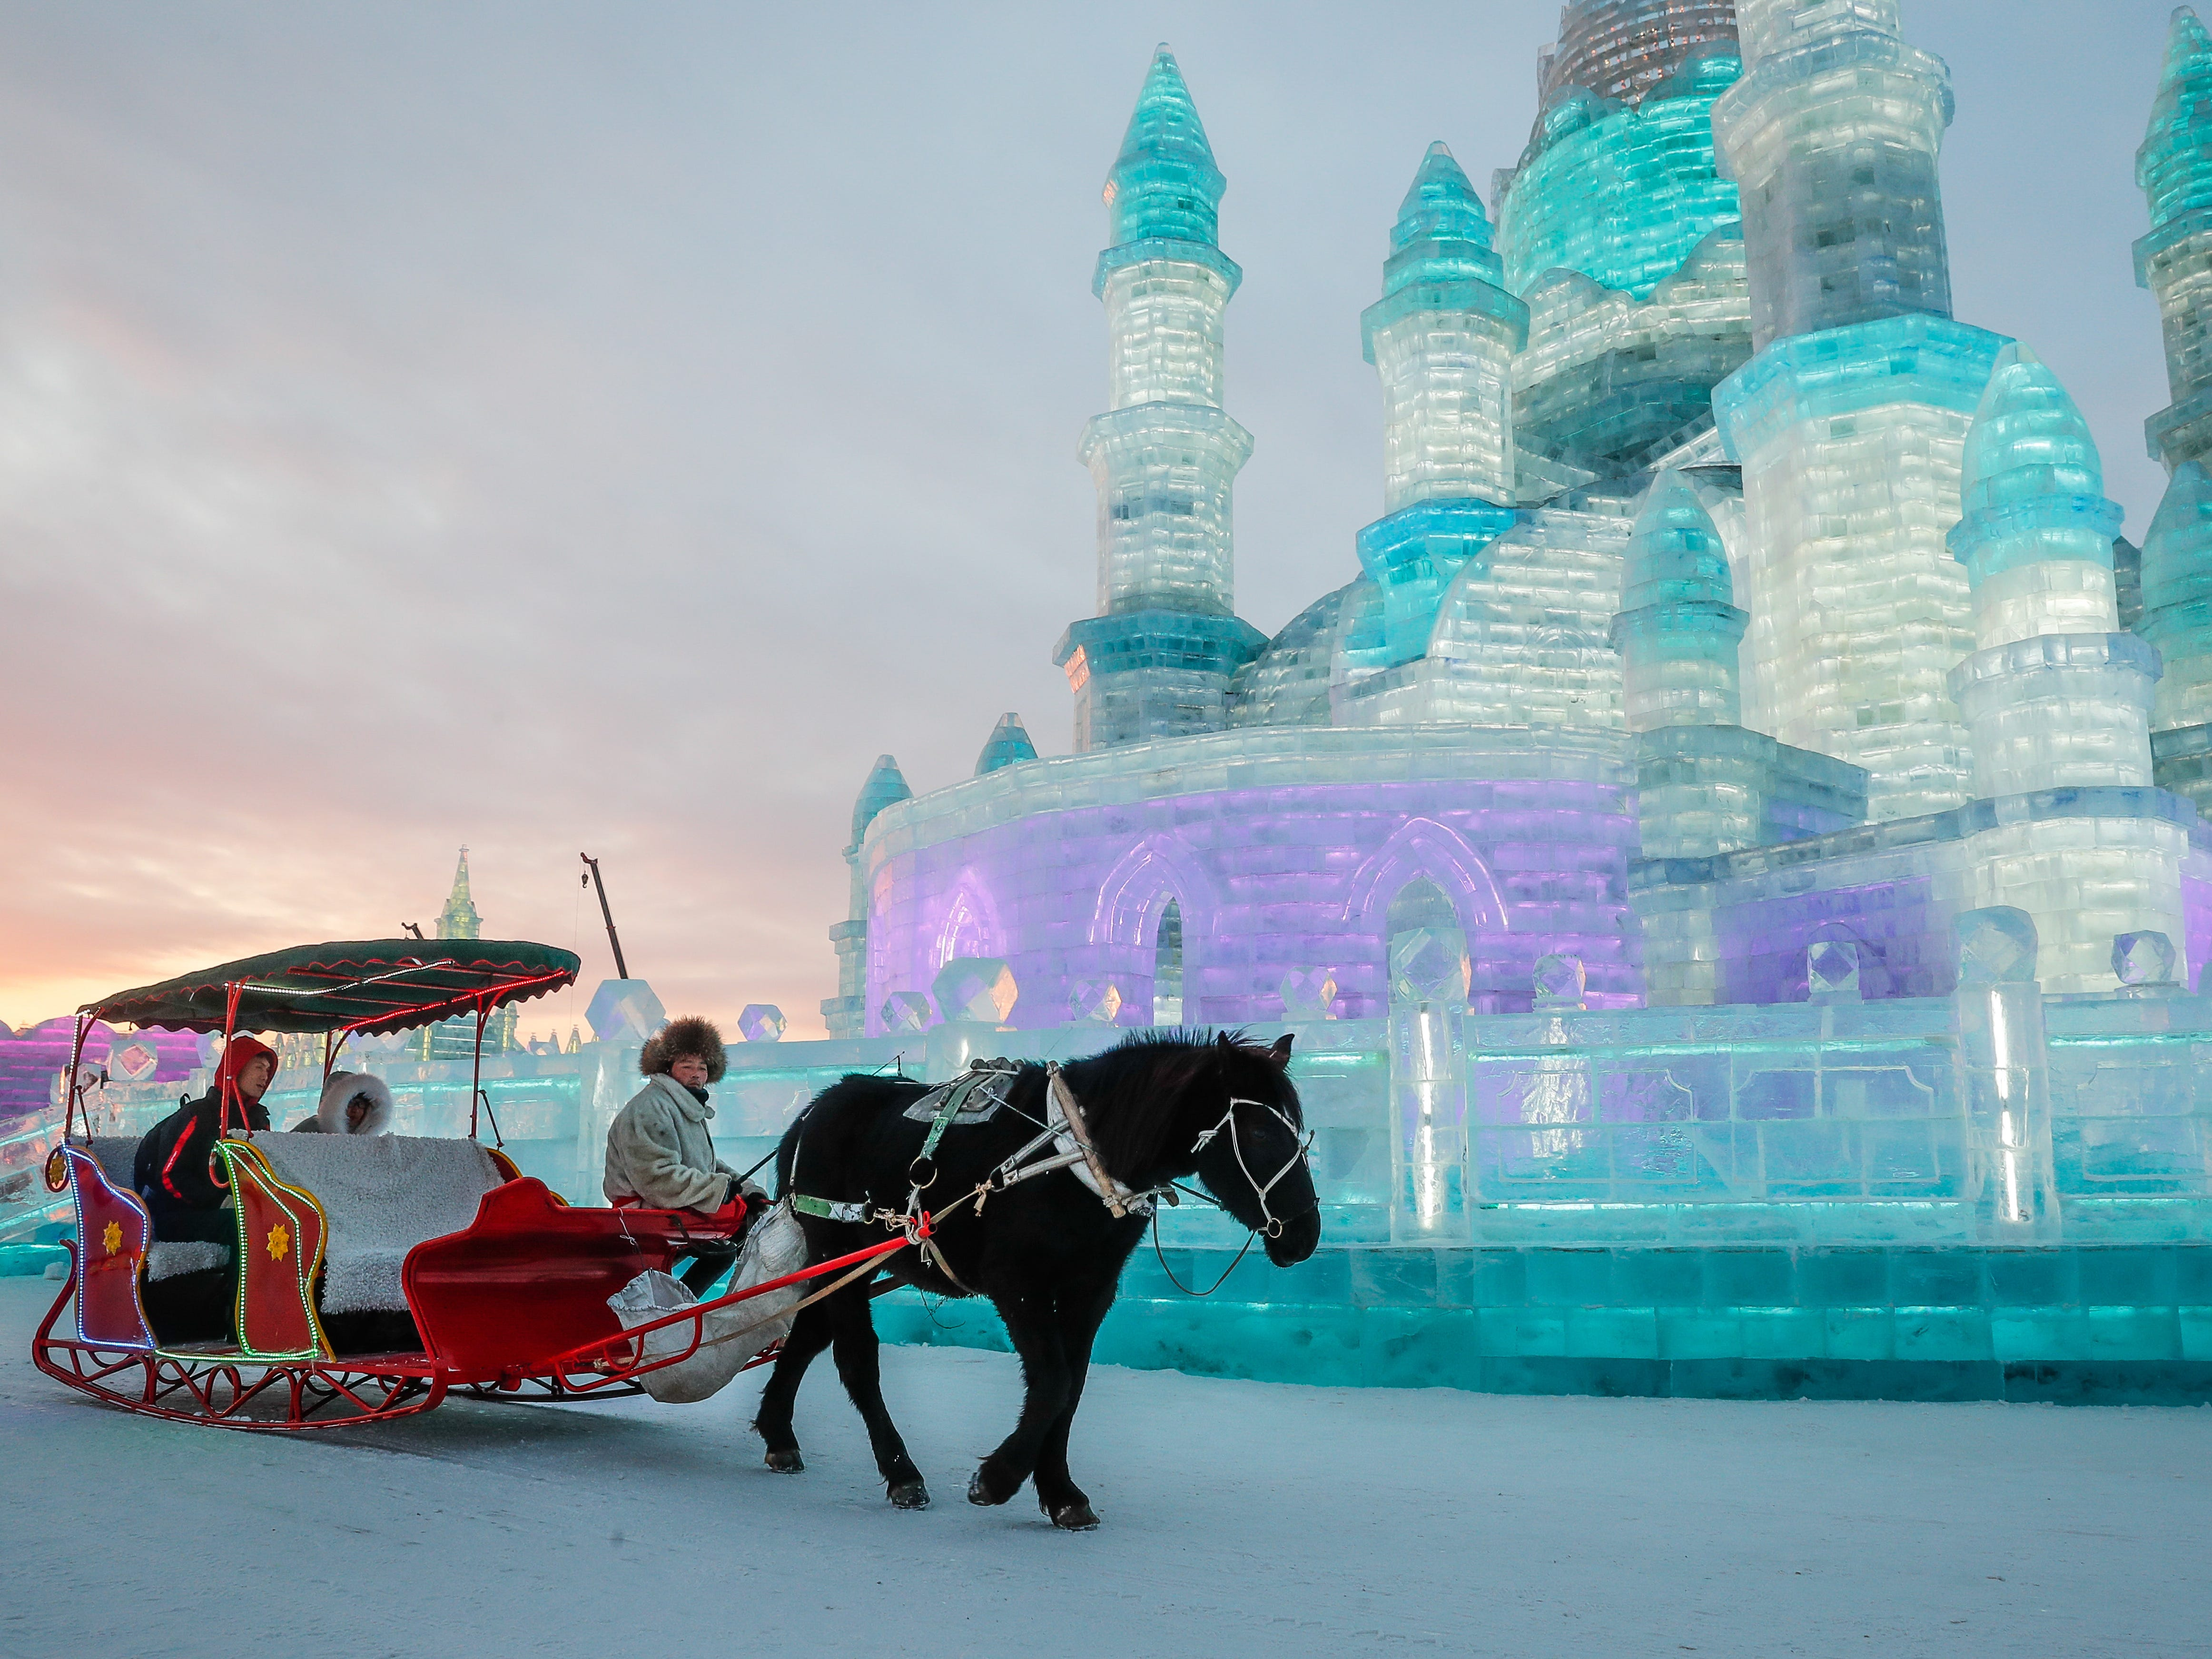 Visitors sit in a horse-drawn carriage in front of the ice sculptures at the Ice and Snow World during the annual Harbin International Ice and Snow Sculpture Festival, in Harbin, China.